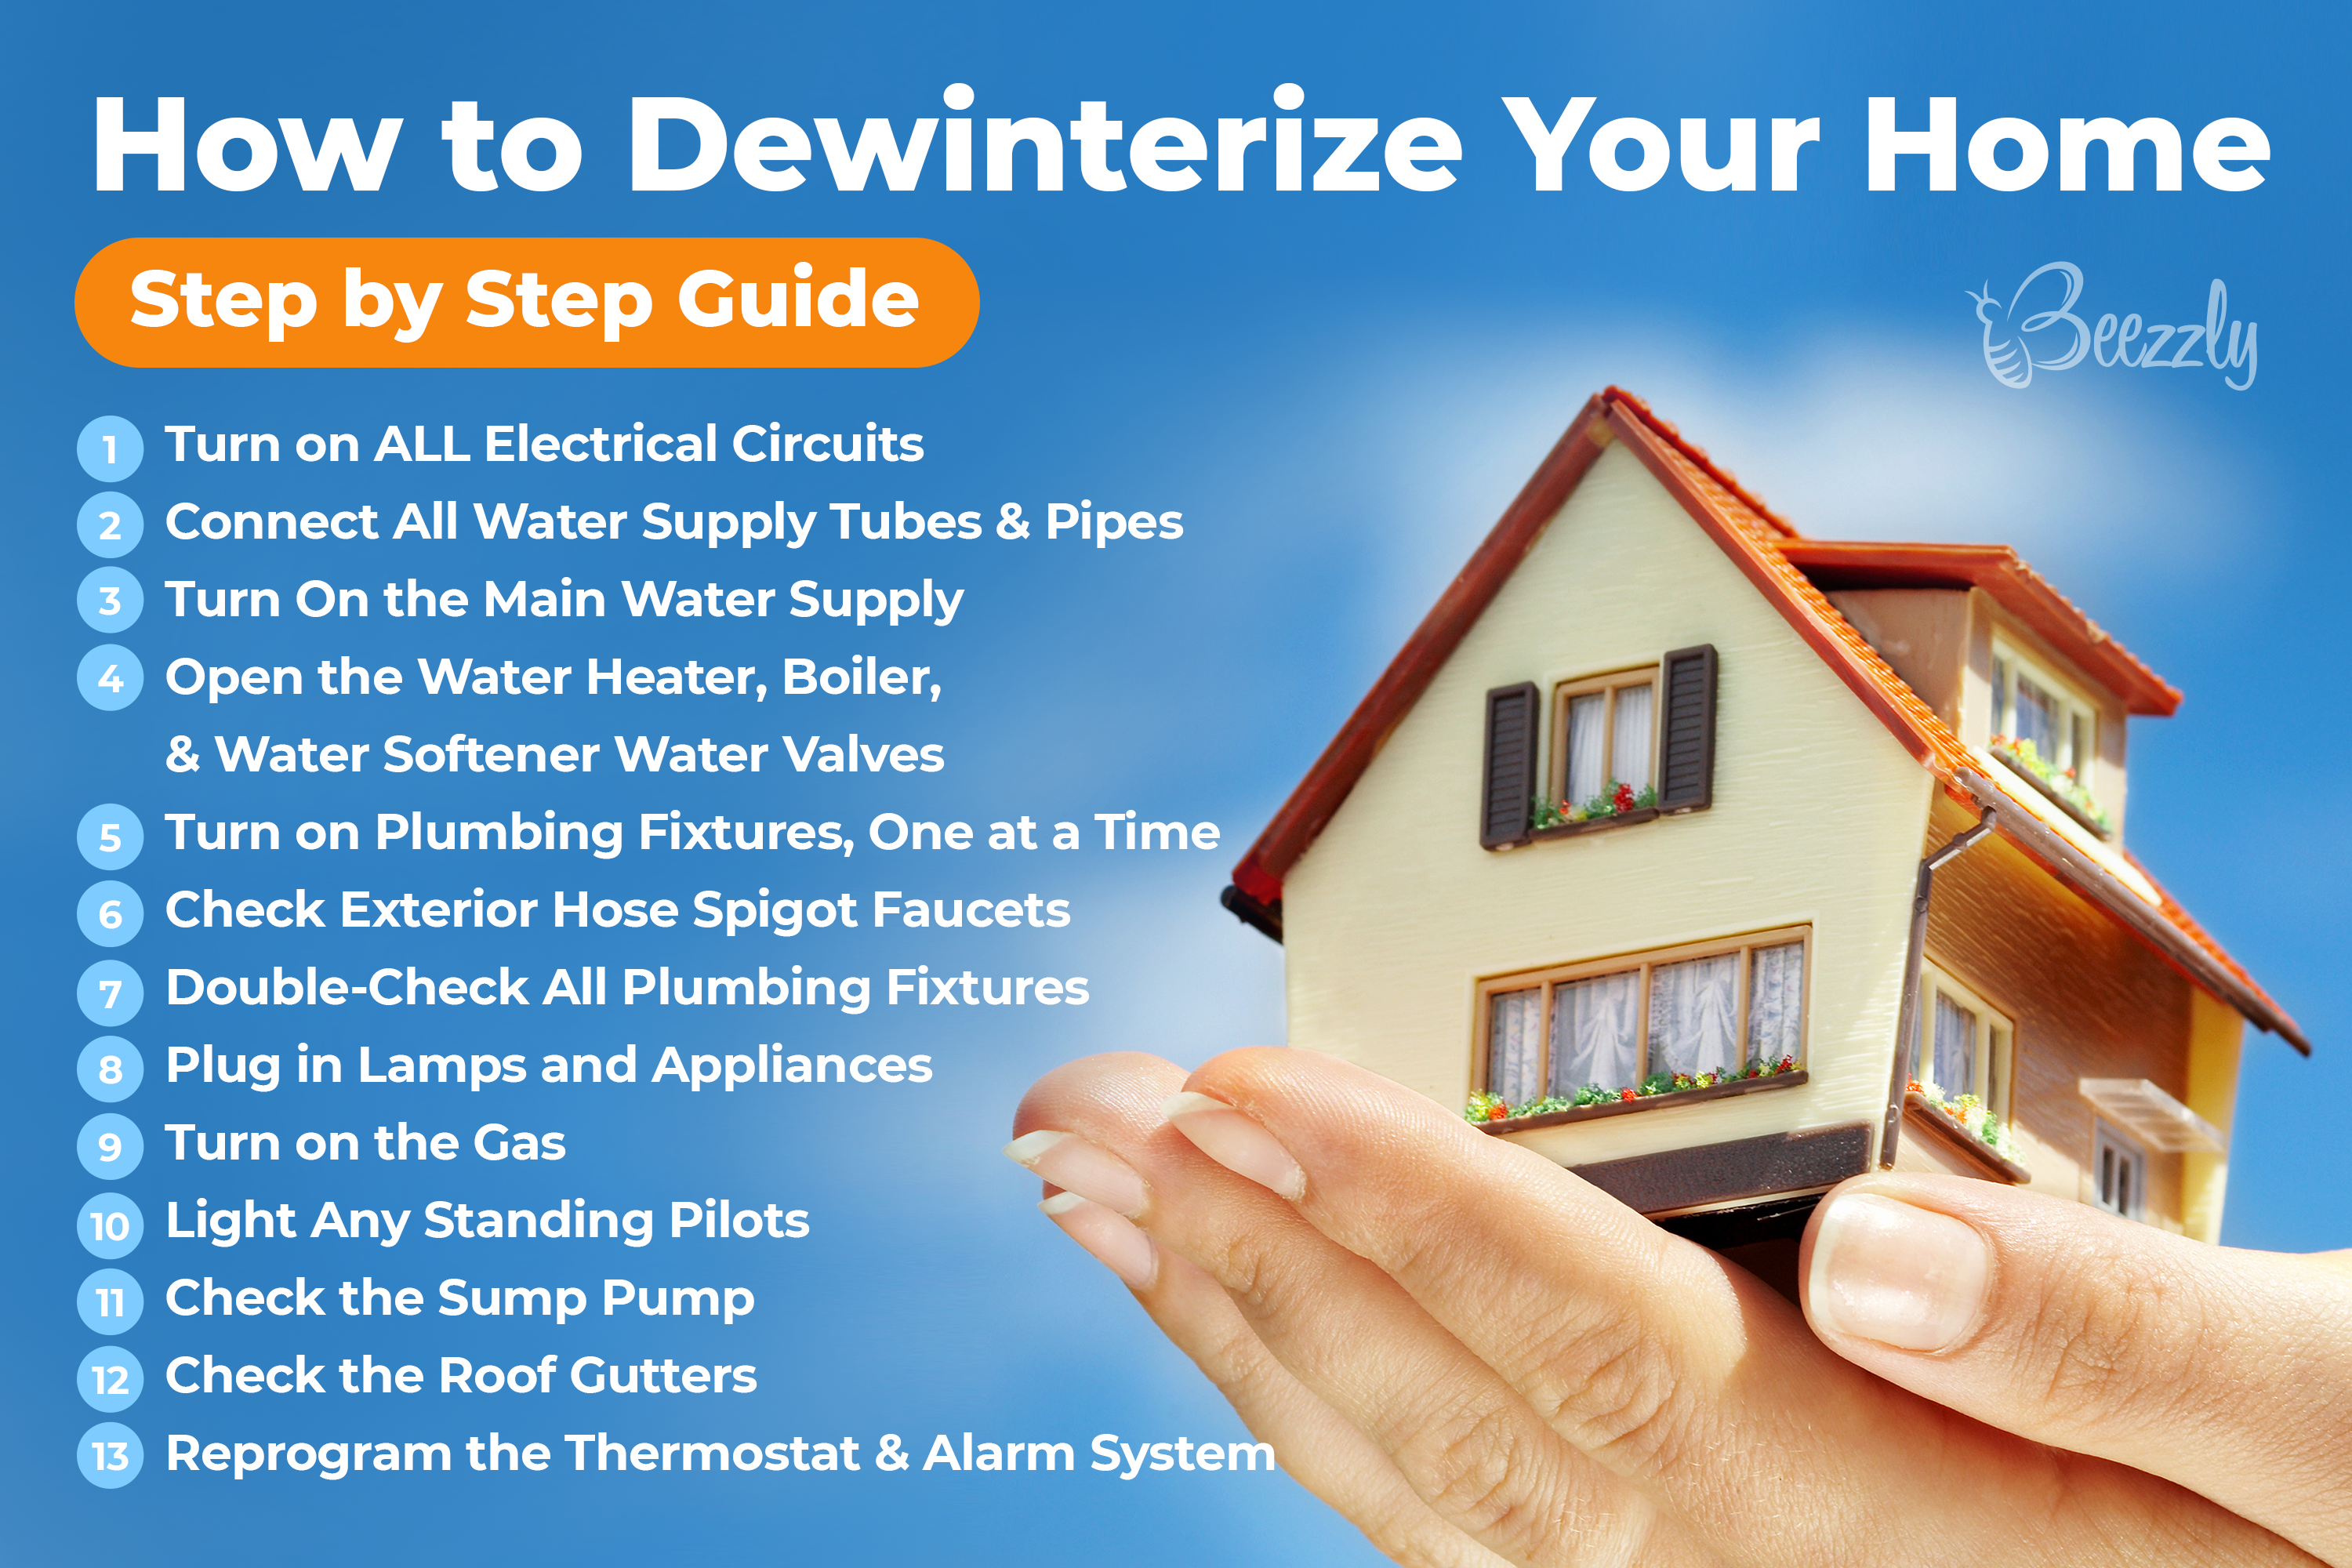 How to Dewinterize a House Correctly